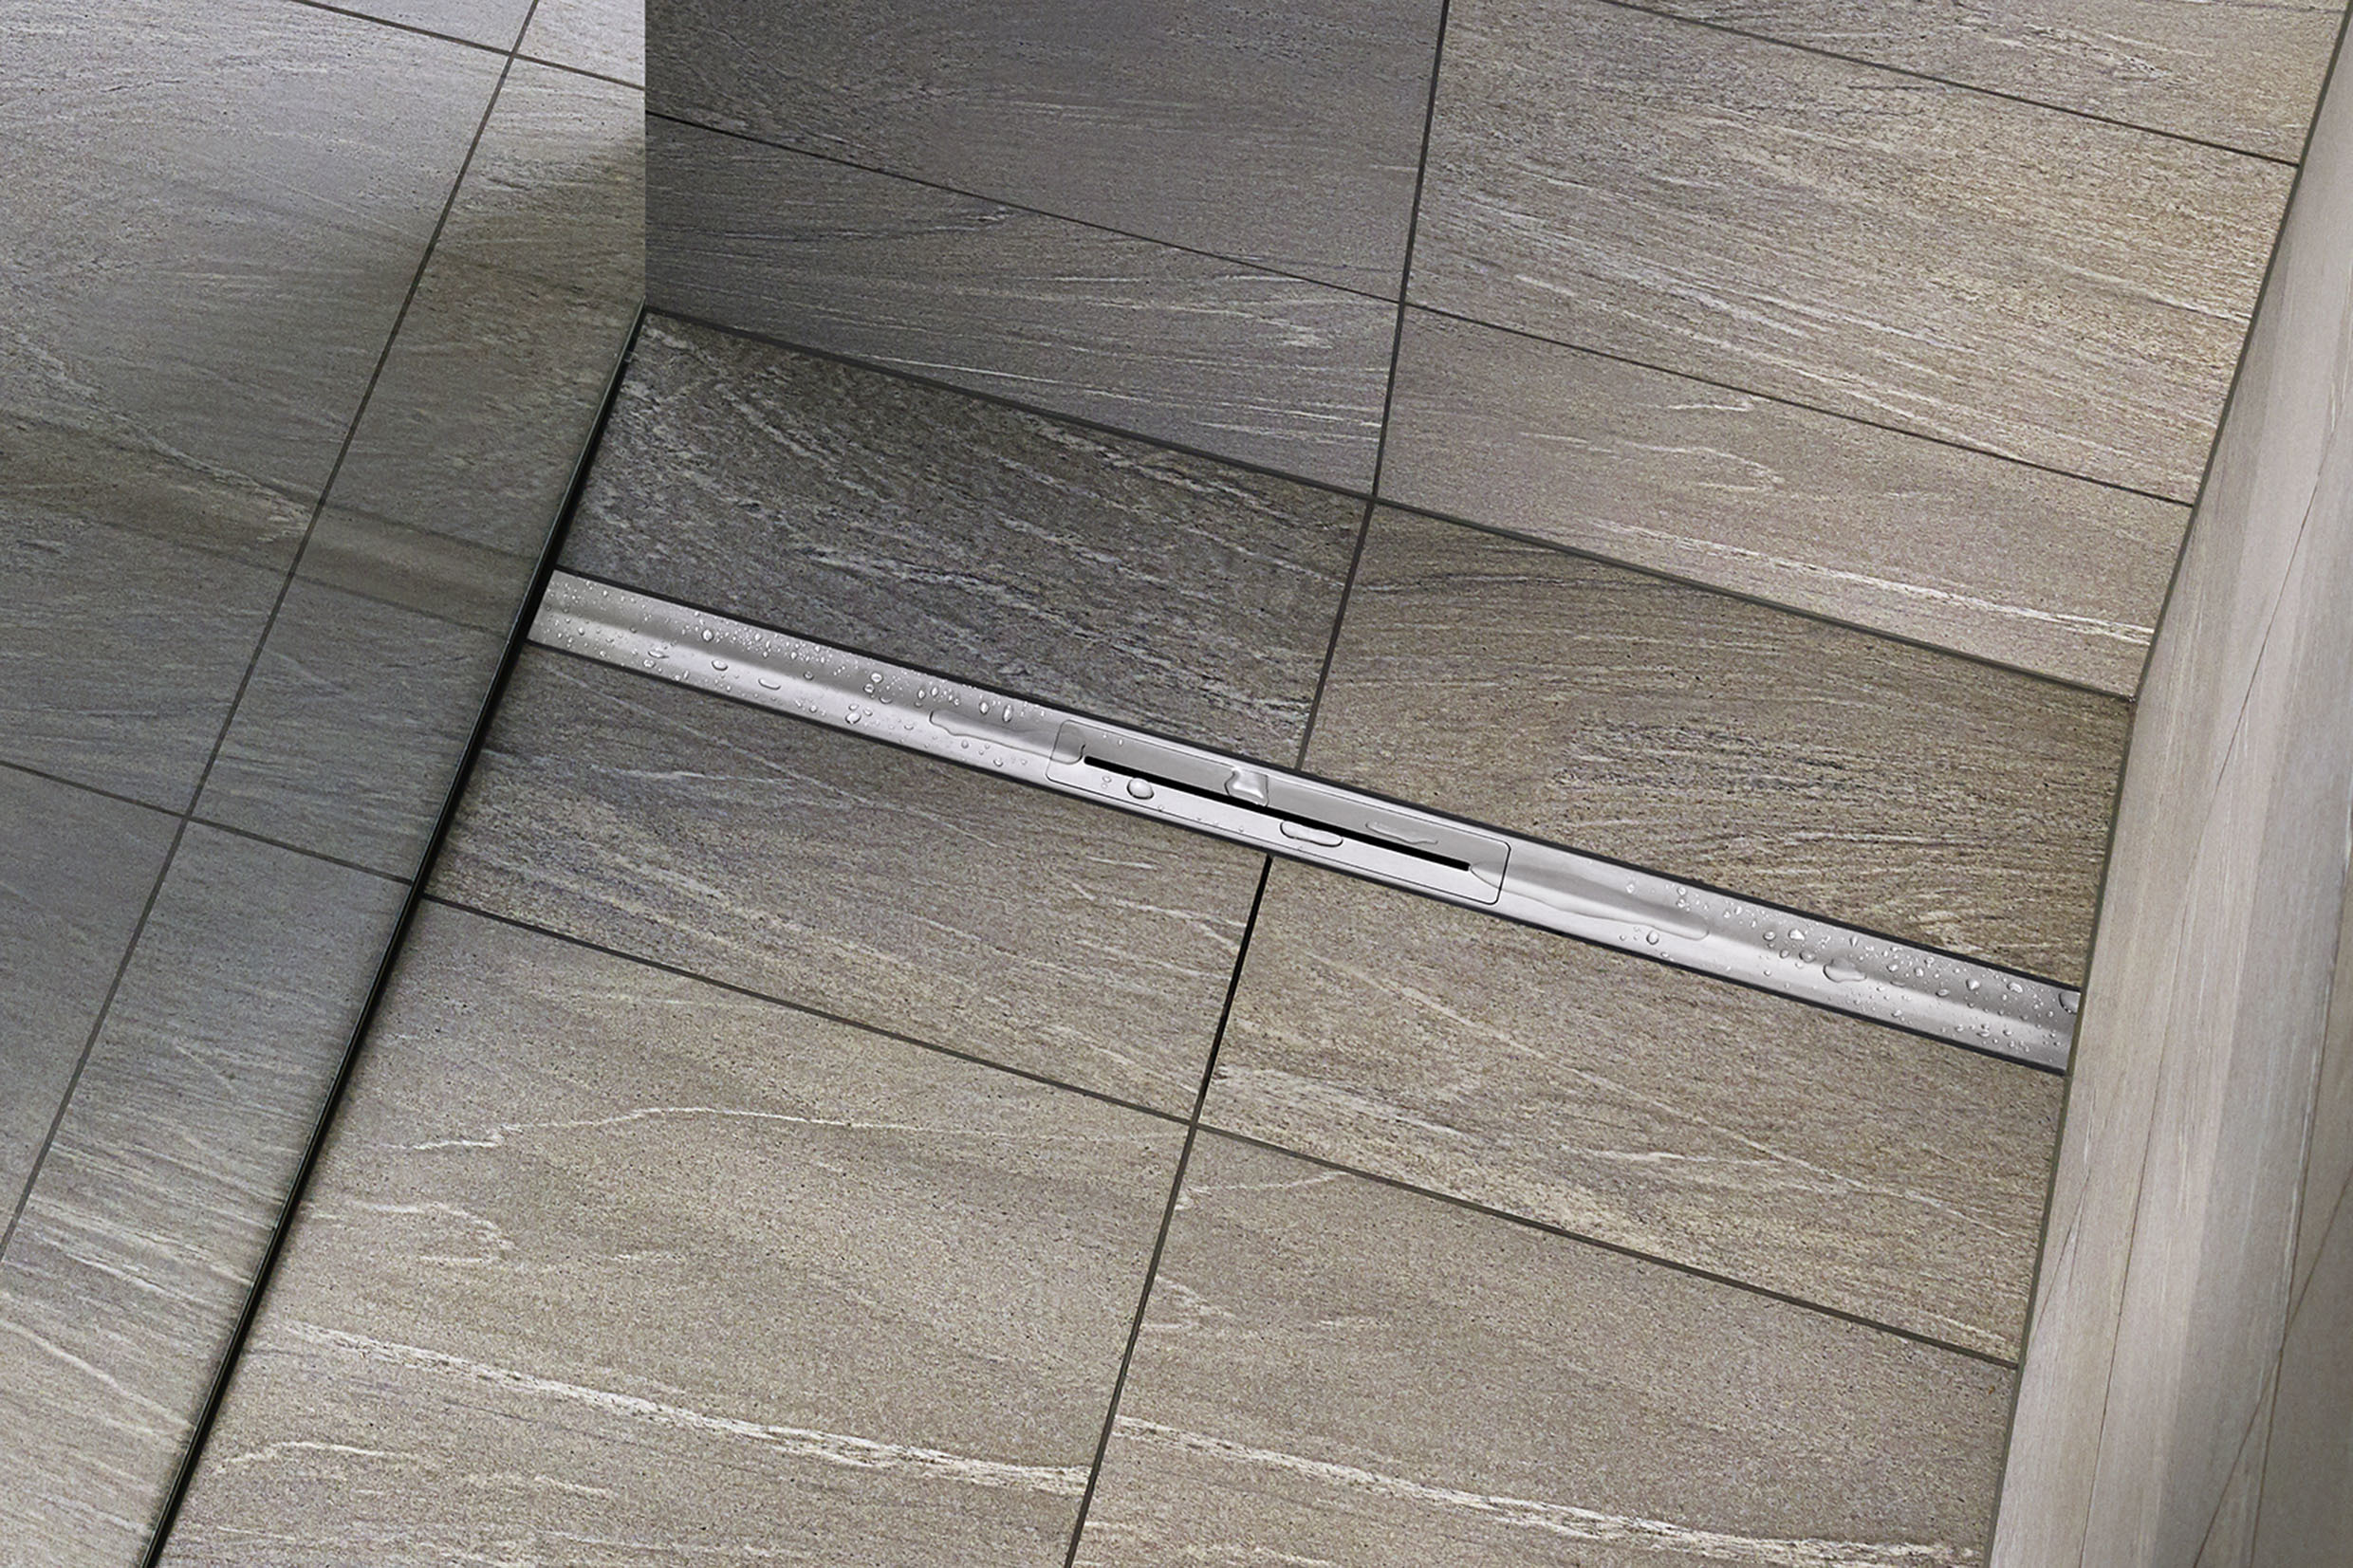 Duschrinne Dallmer Cerawall Select Dallmer Shower Channel Cerafloor Pure By Dallmer Stylepark